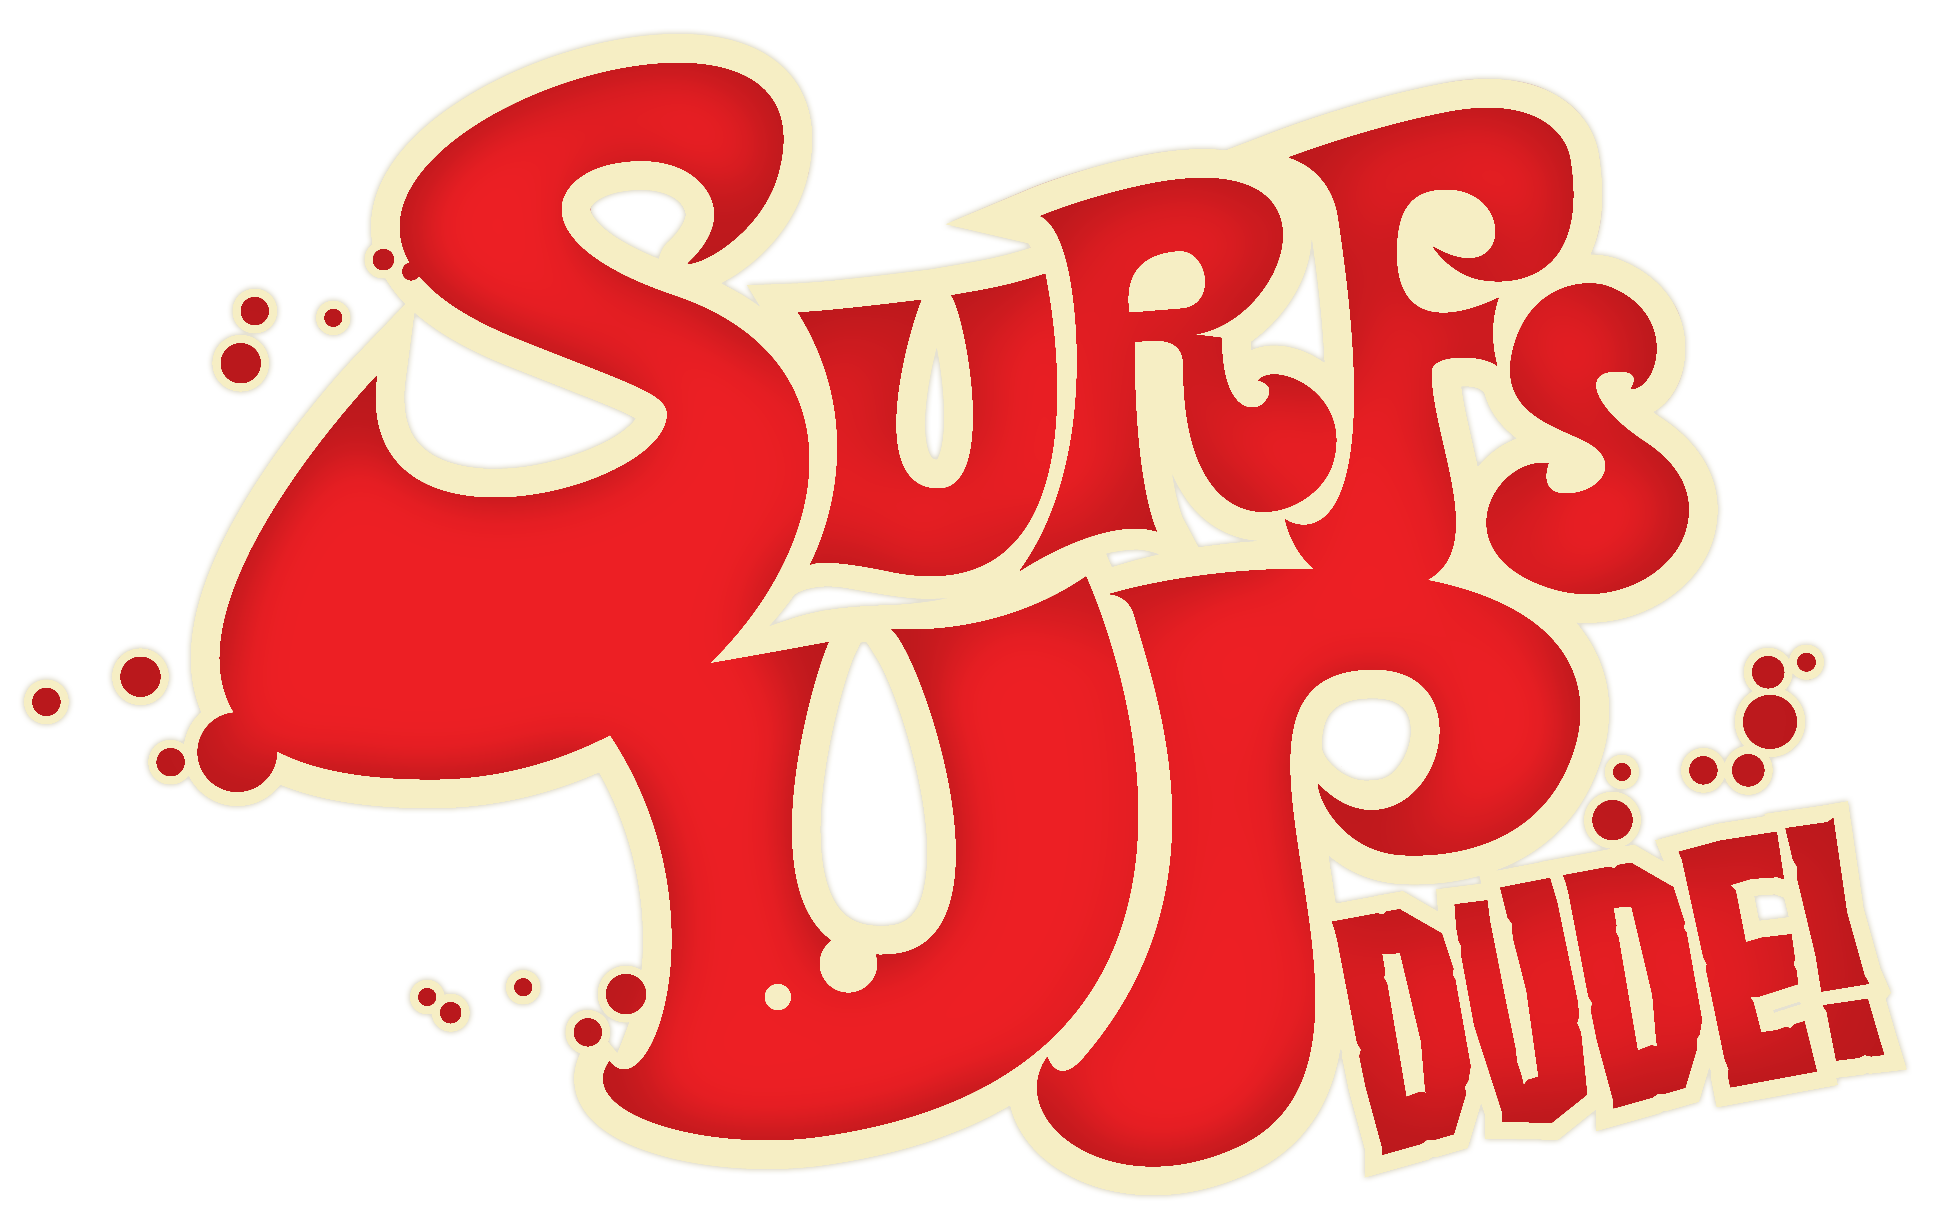 surfs_up_logo.png